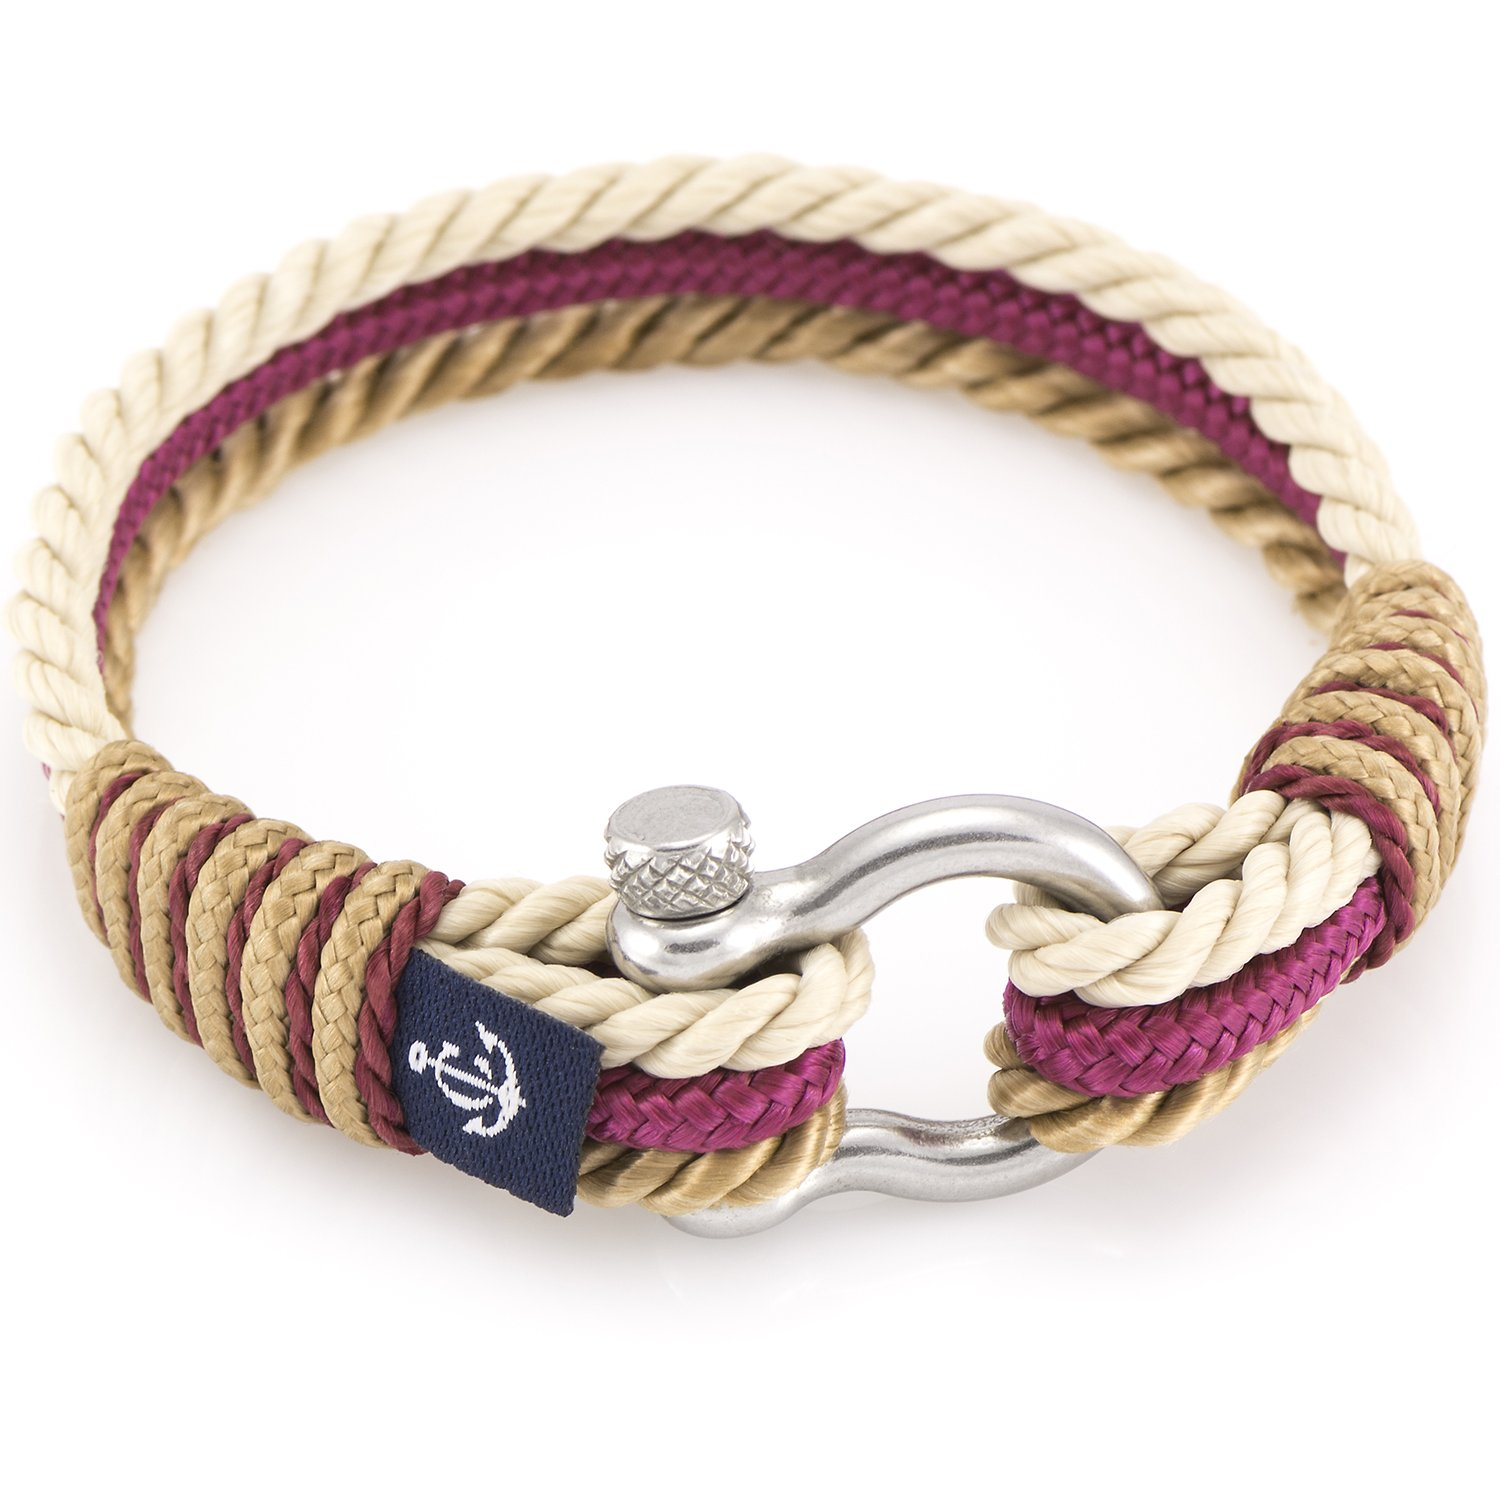 colors paracord products rope knot mystic stripe nautical knotwork bracelet sailboat shackle blue